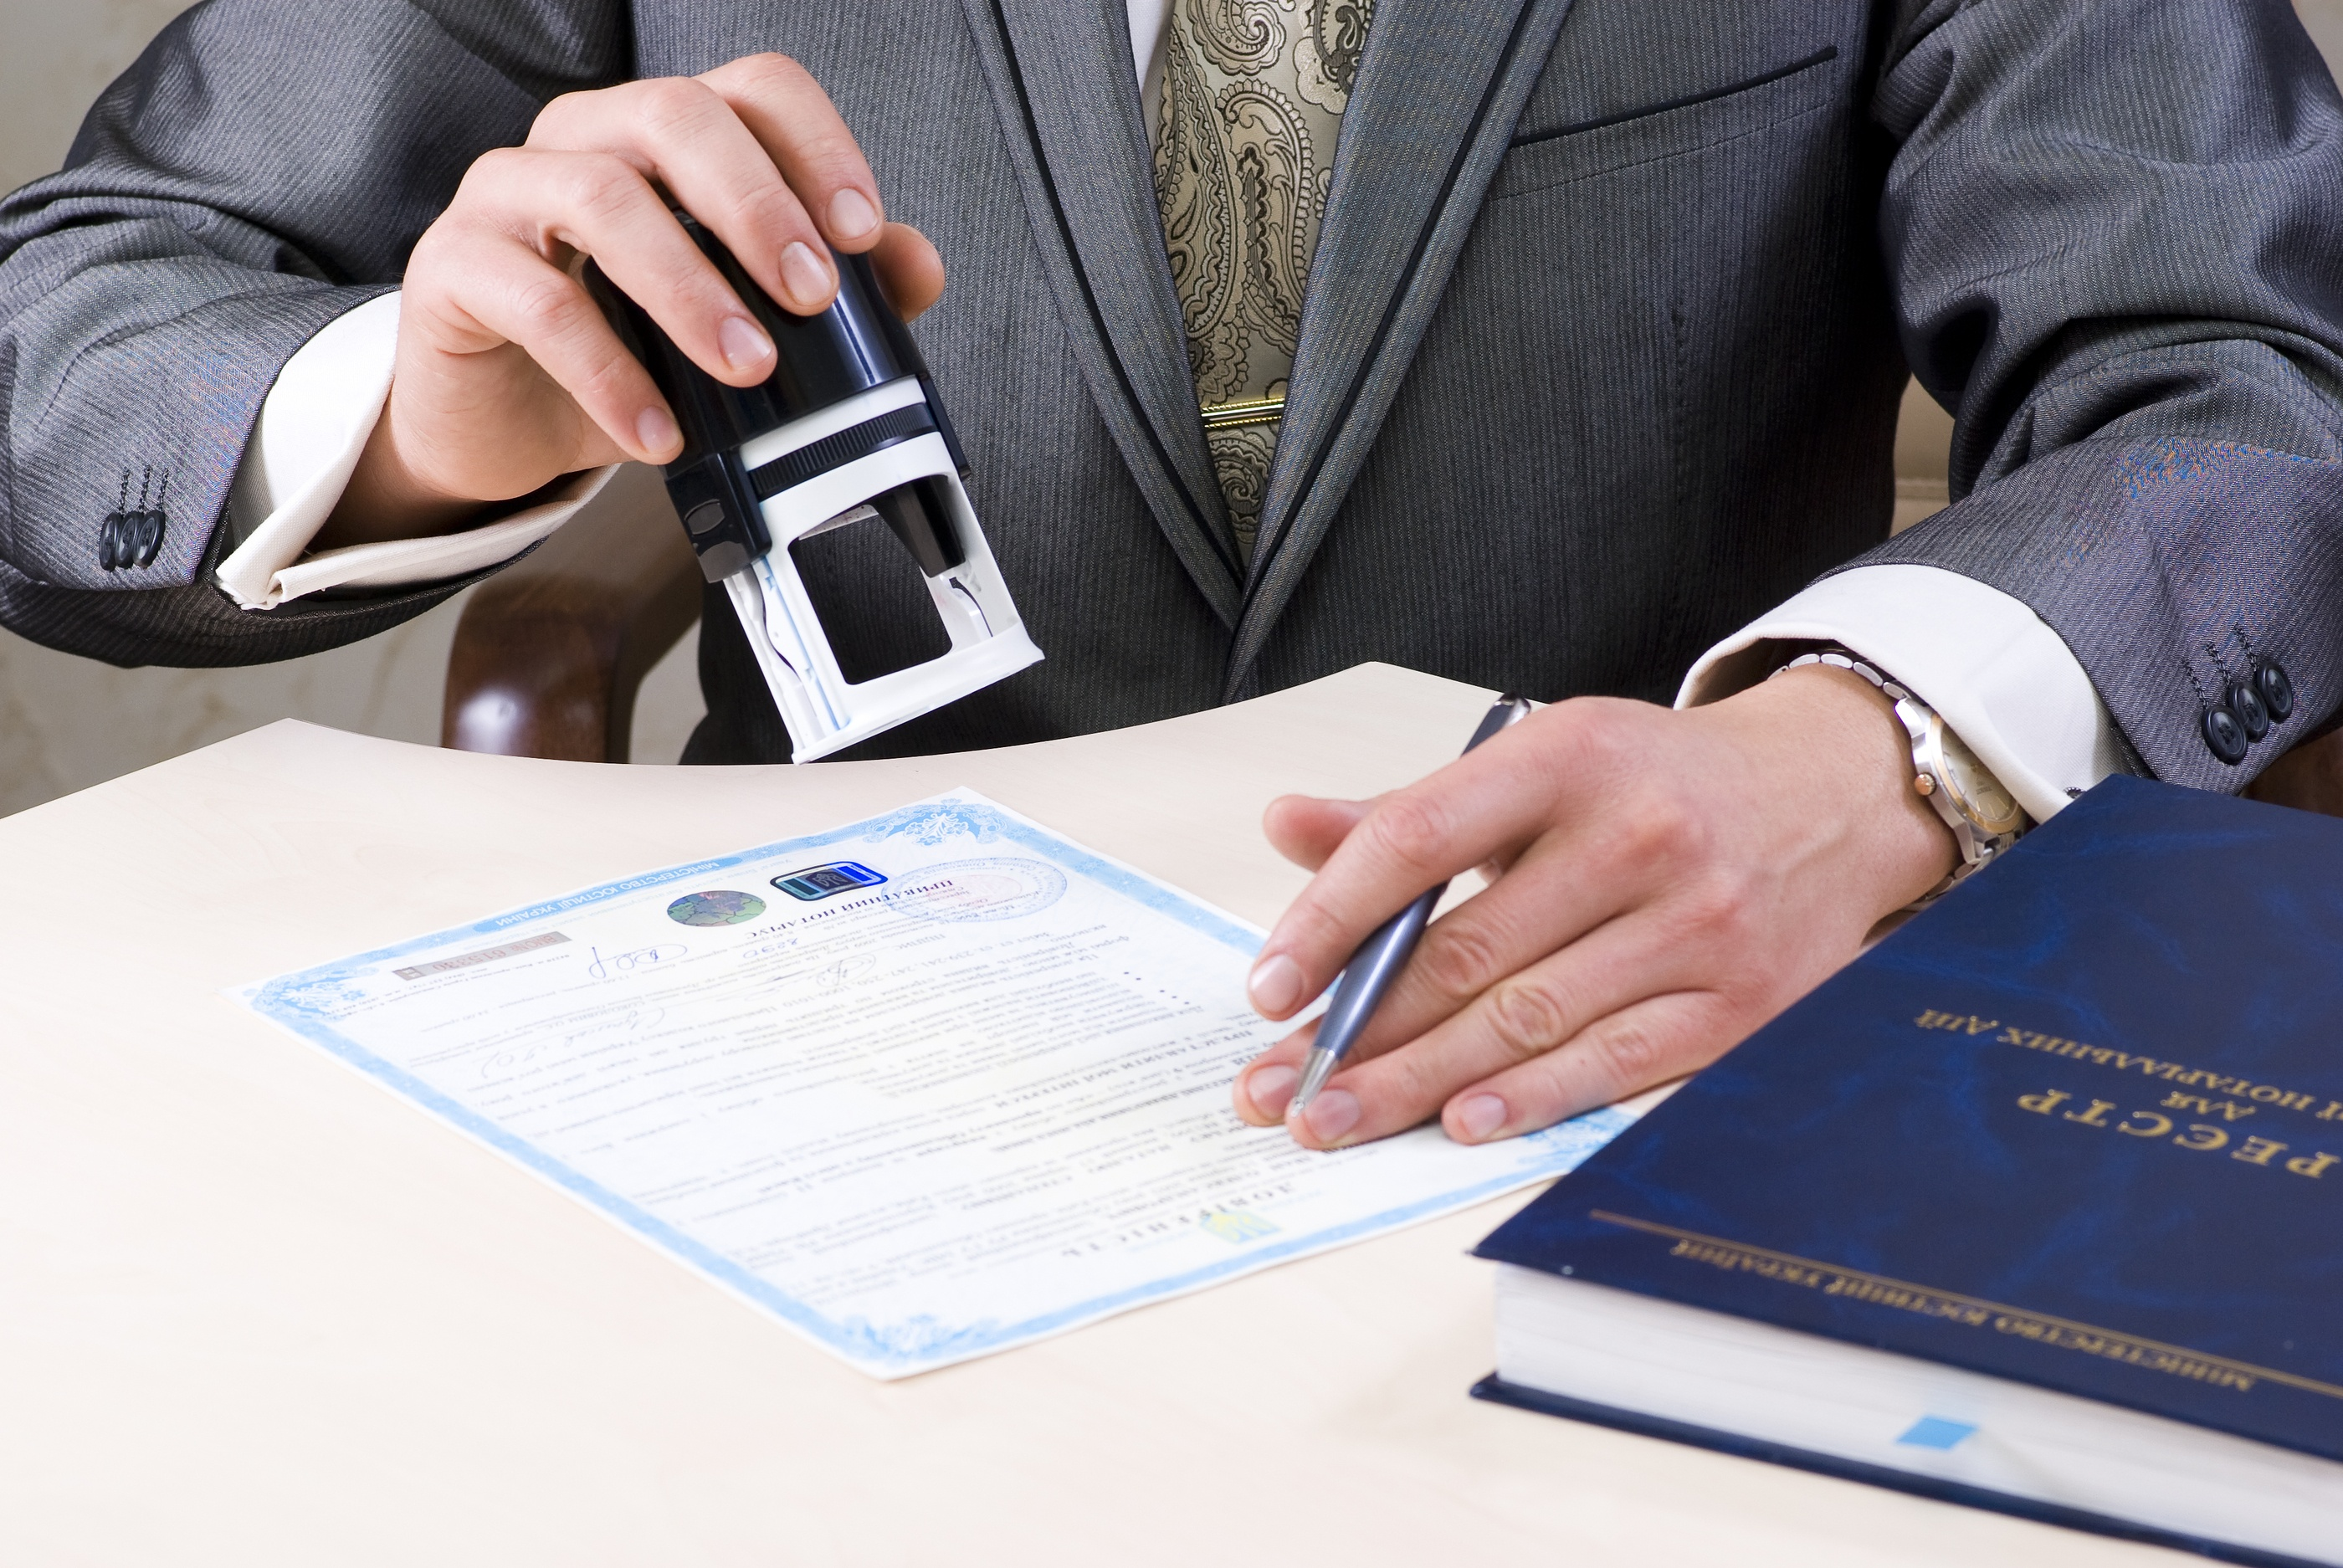 As A Notary Public, You're Responsible For Many Aspects Of Your Clients'